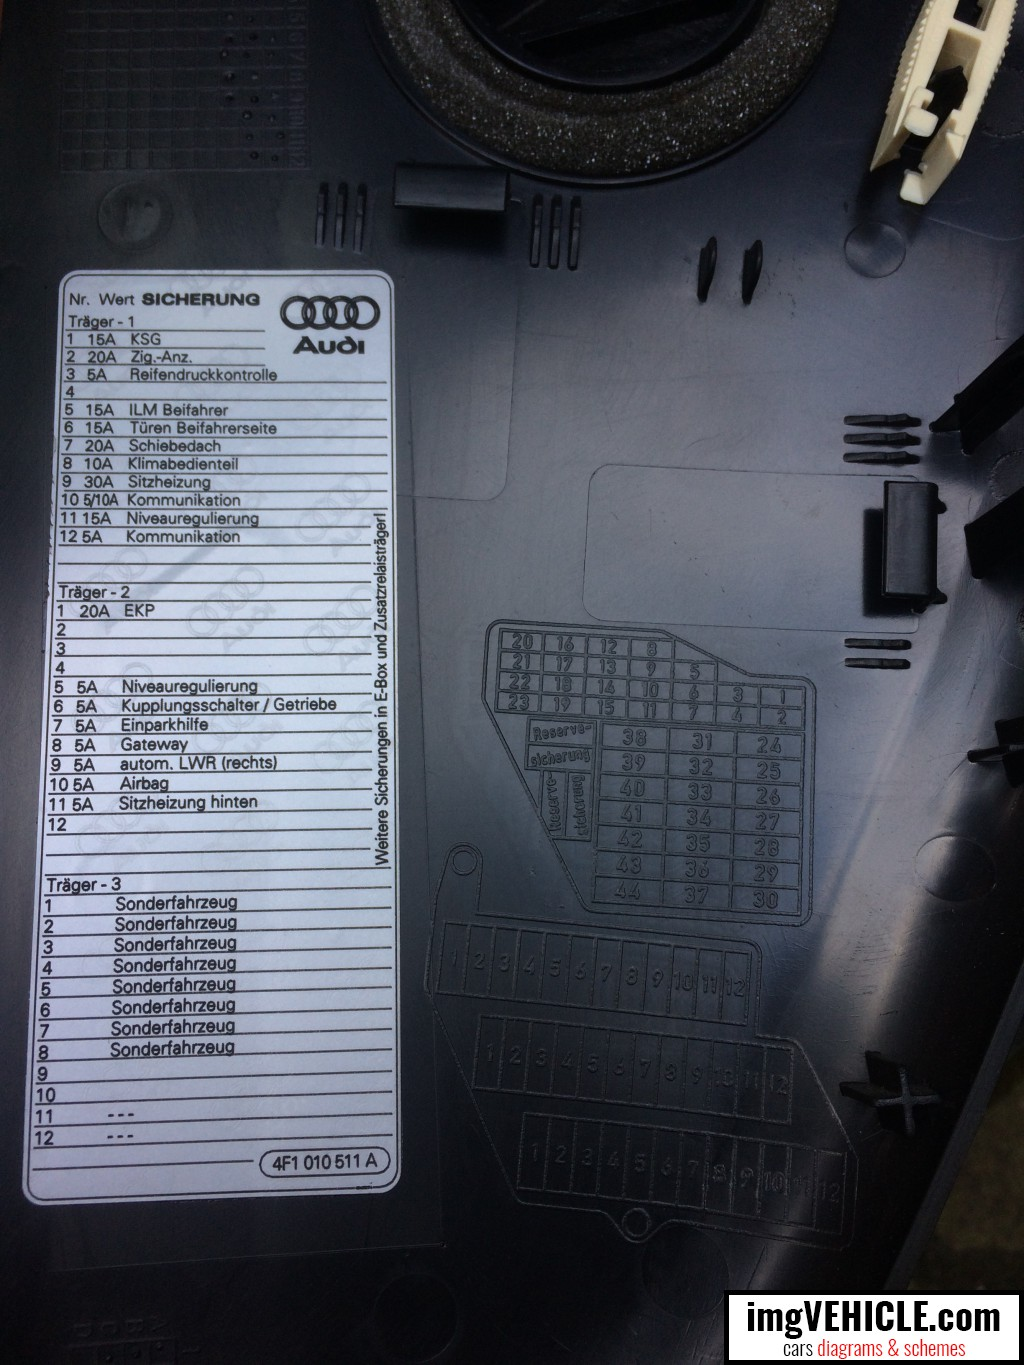 fuse box for audi a6 audi a6 c6 fuse box diagrams & schemes - imgvehicle.com fuse box in audi a6 2006 #4